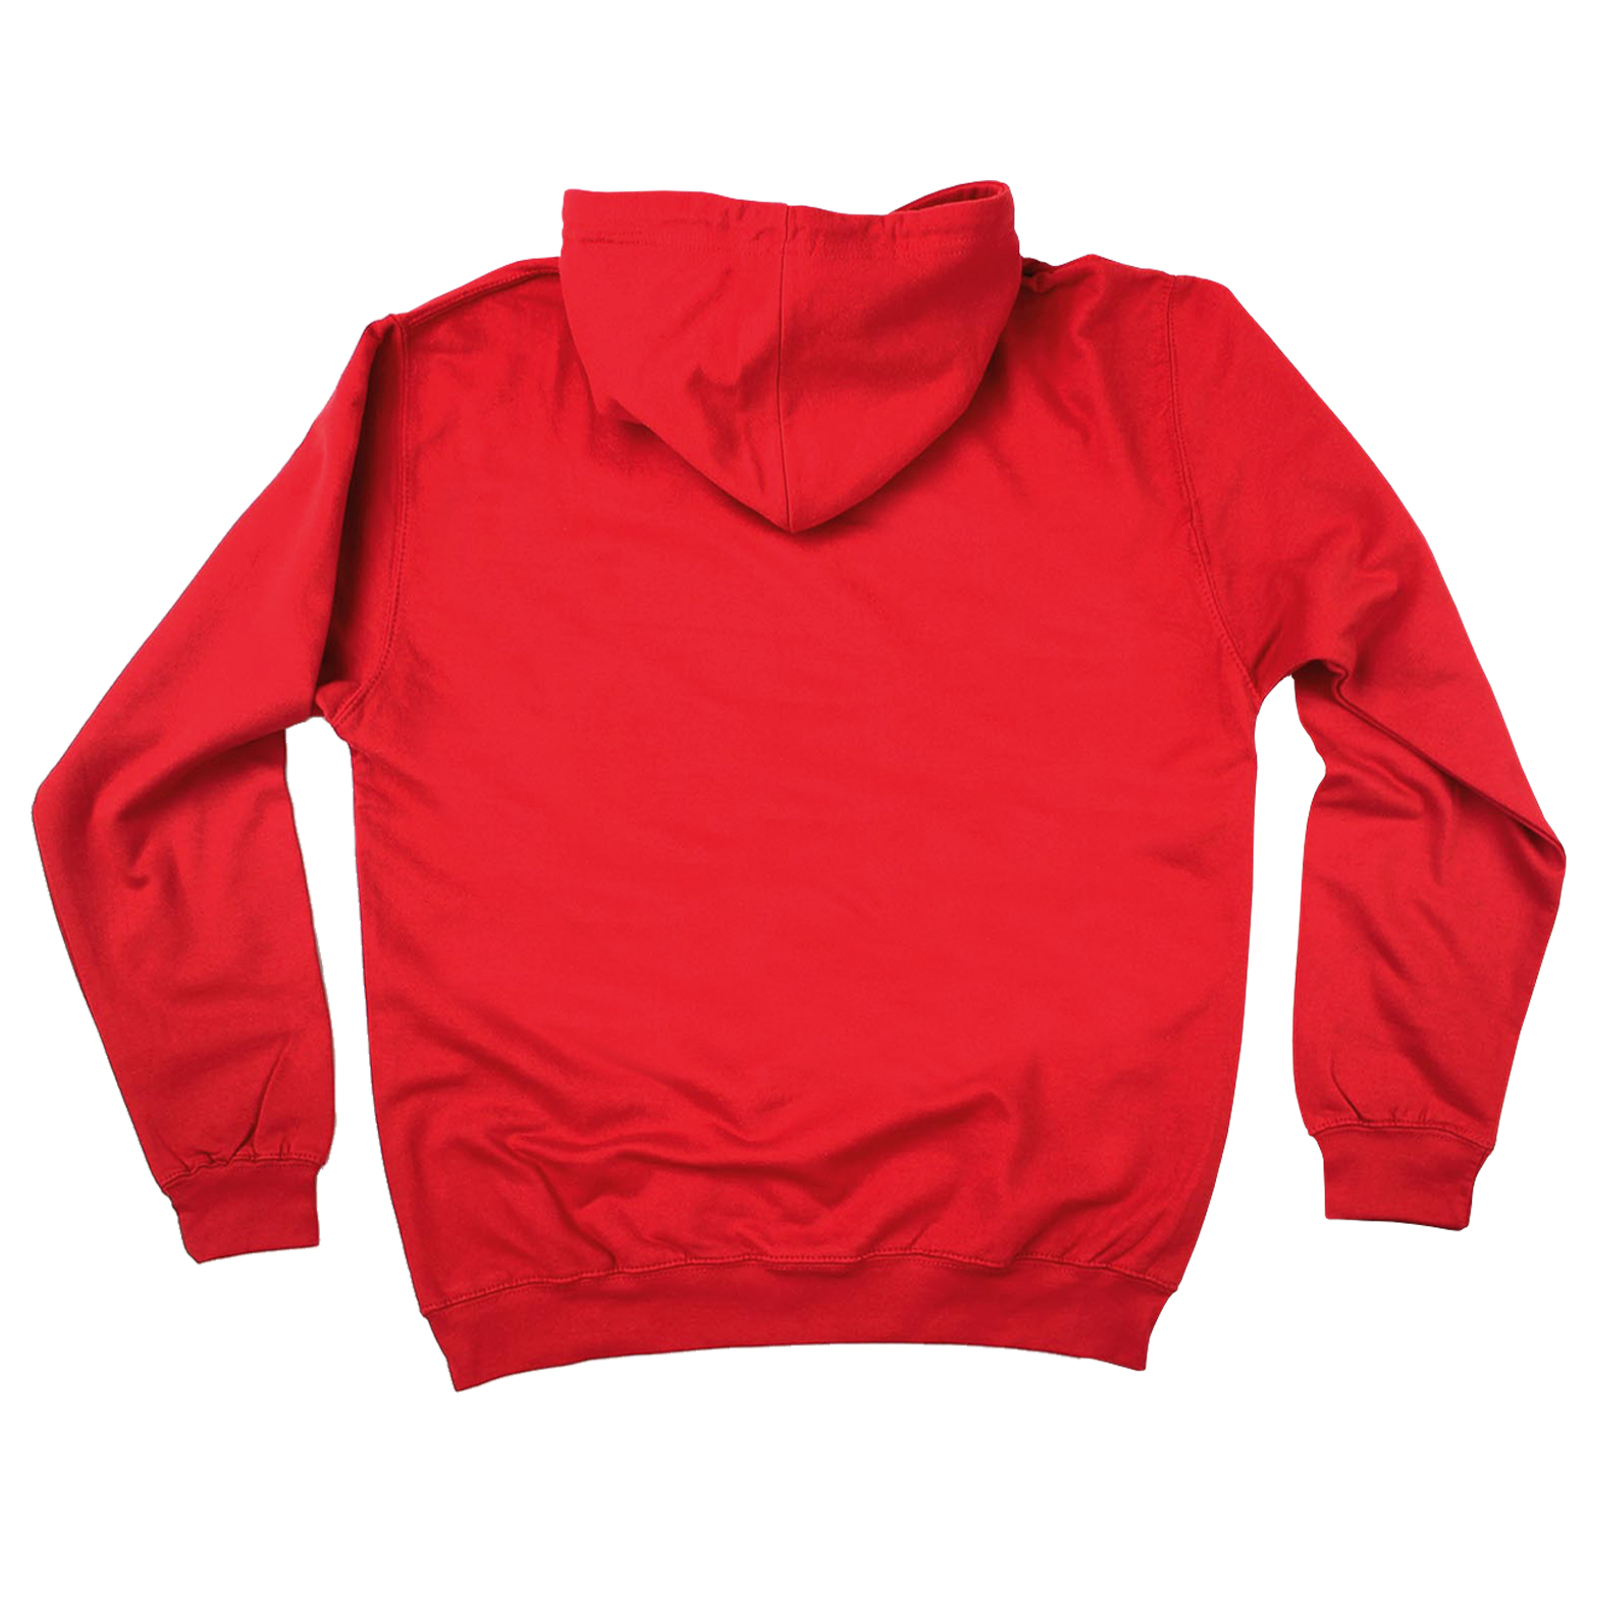 Cycling-Hoodie-A-Good-Ride-Fixes-Everything-hoody-funny-Birthday-HOODY thumbnail 23